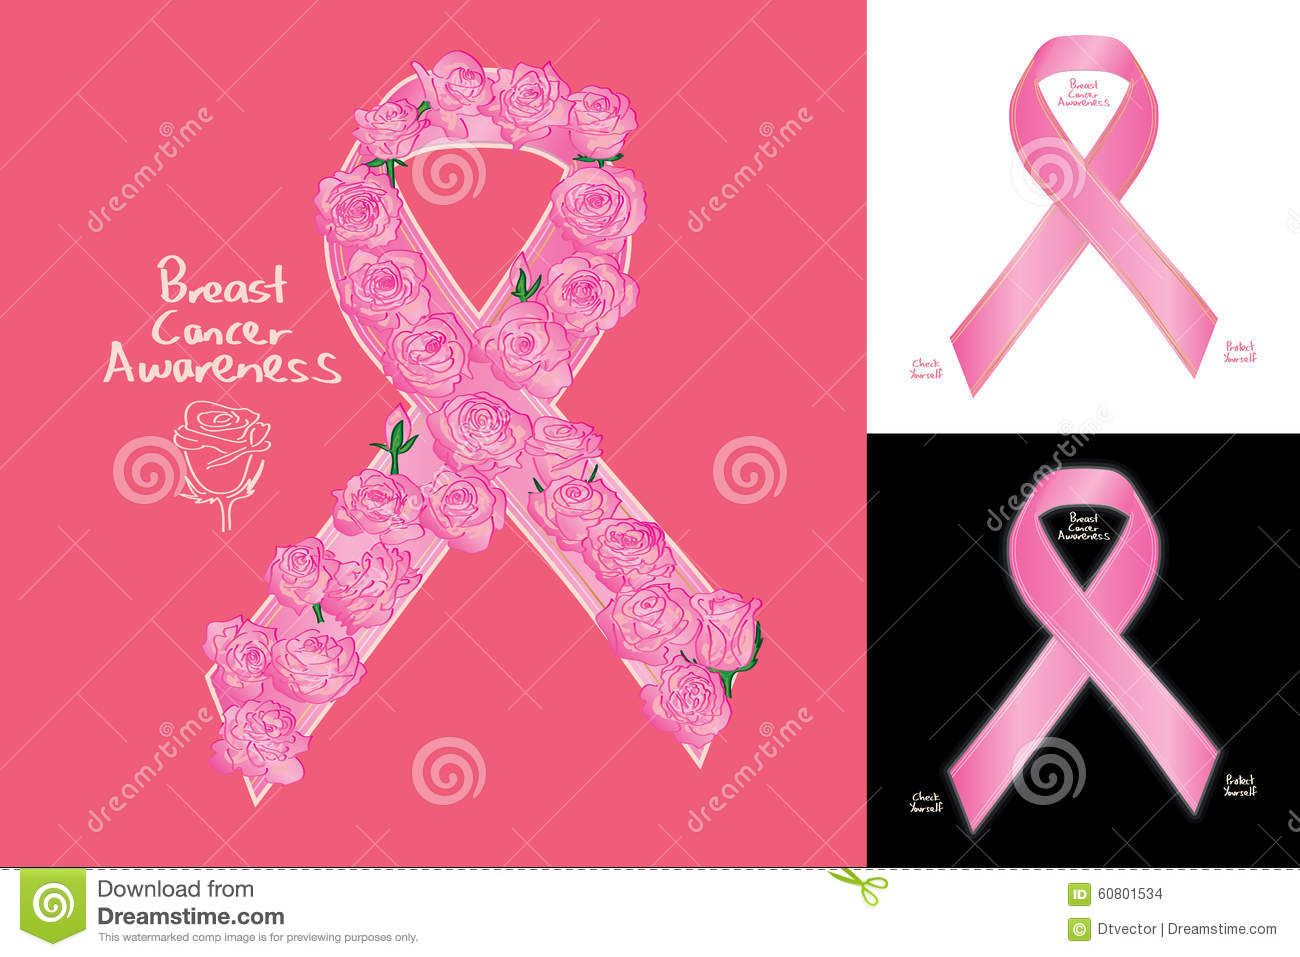 Breast Cancer Awareness Ribbon Sign Rose Decor Stock